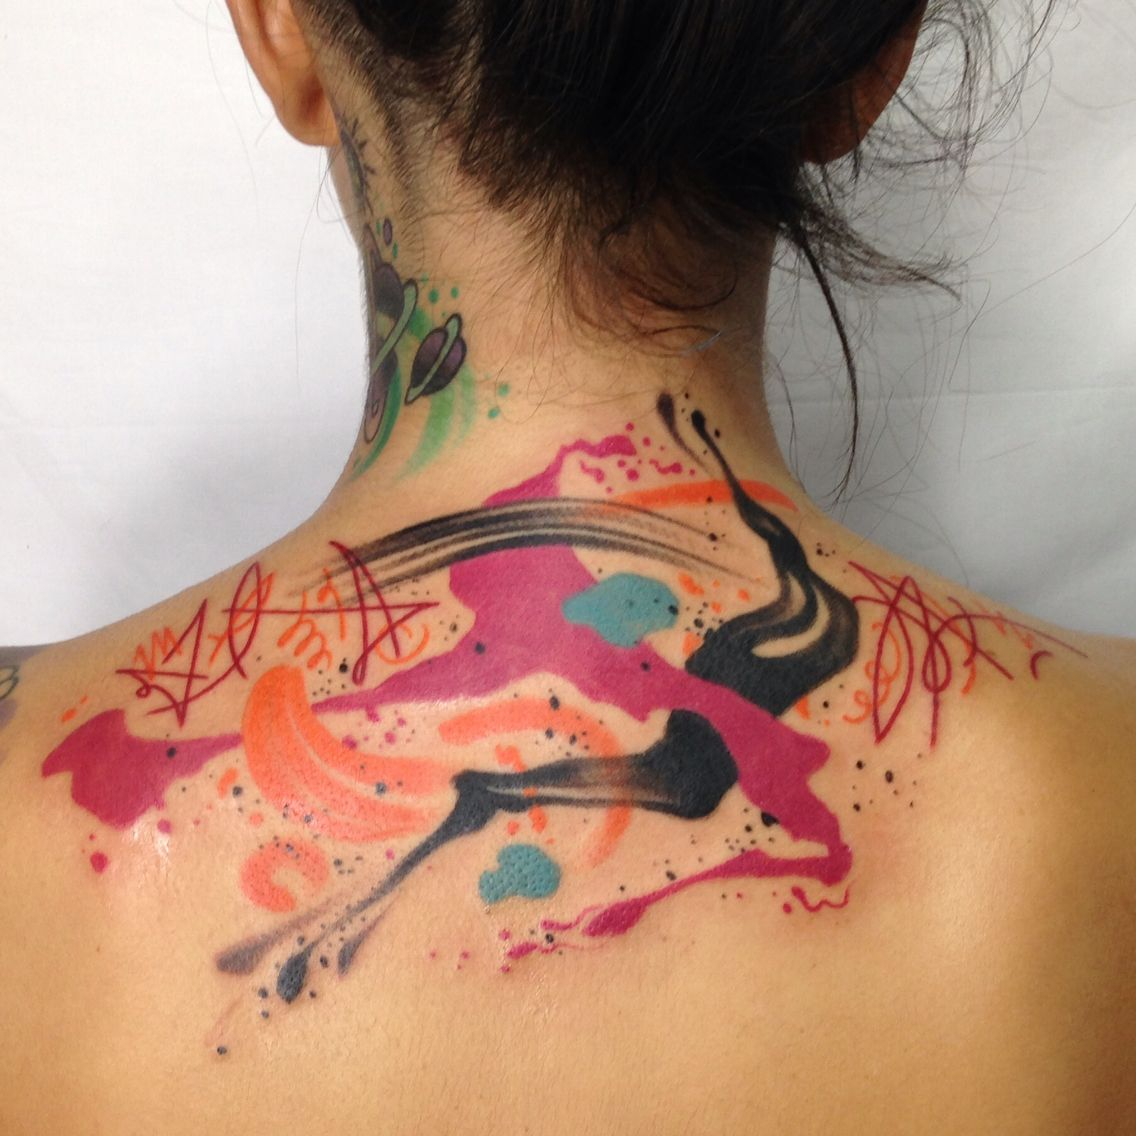 Abstract Watercolor Tattoo Art On Girl By Los Angeles Artist Tim